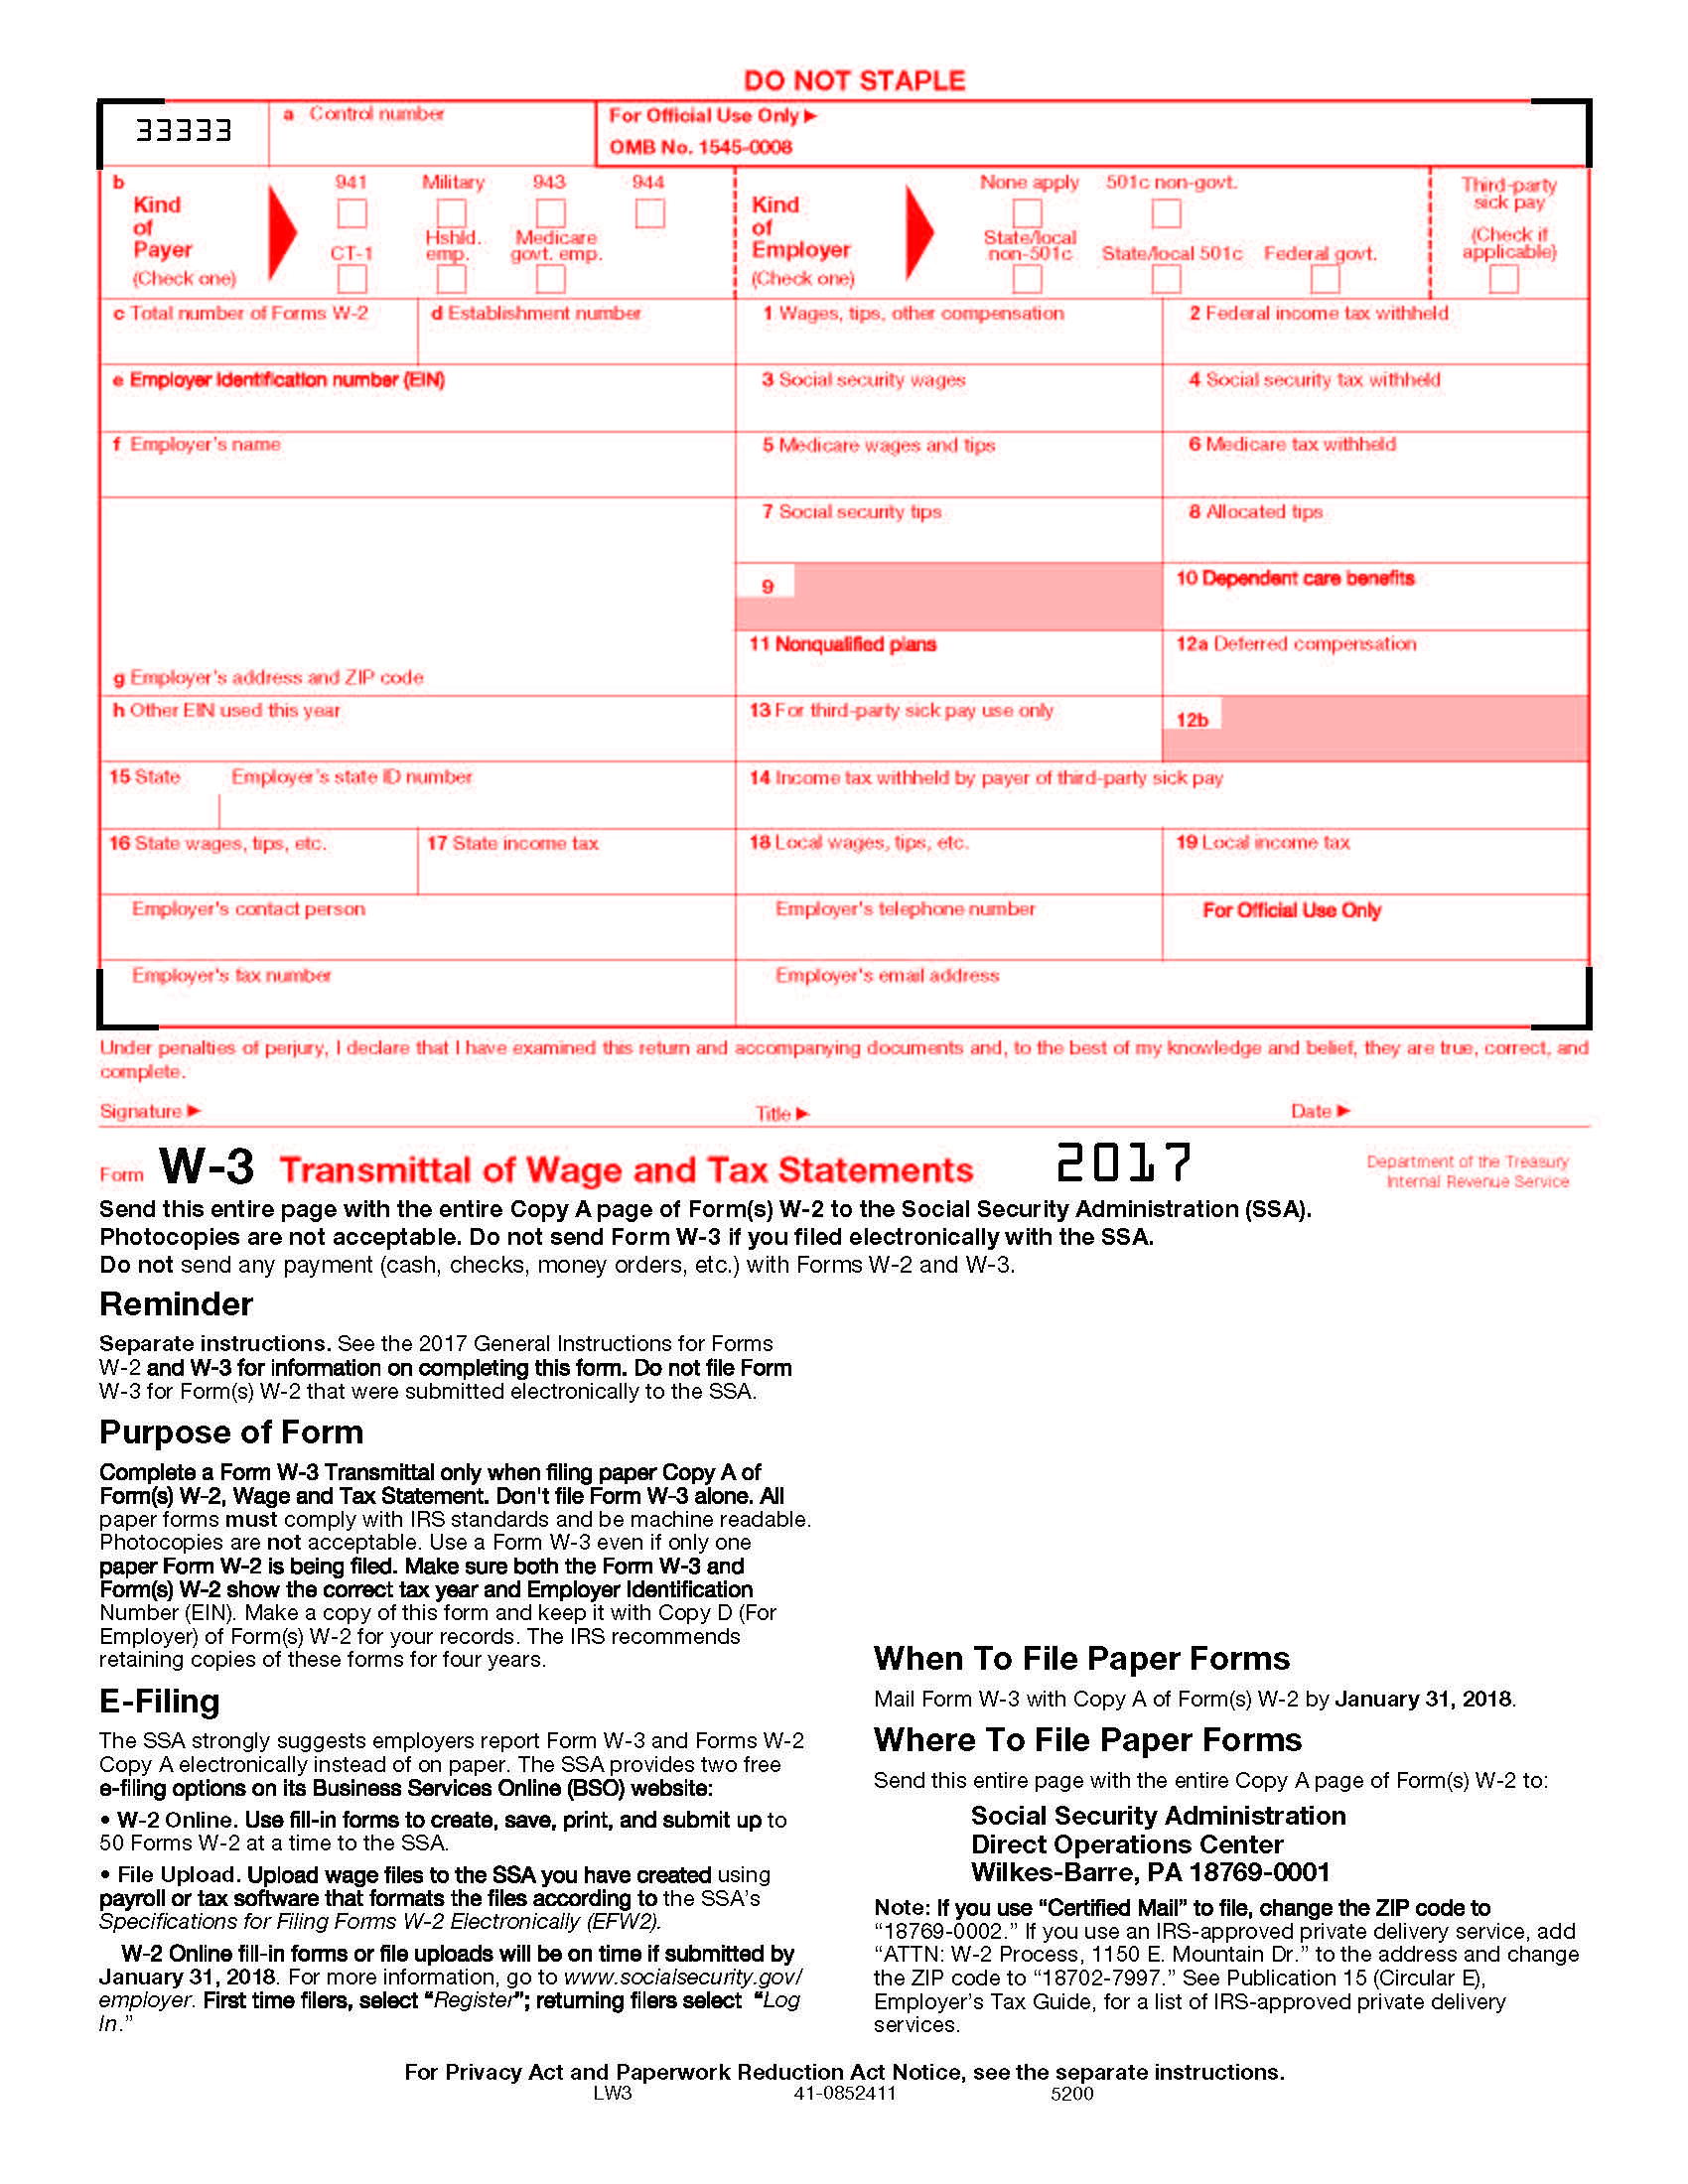 W-3 Laser Transmittal of Income